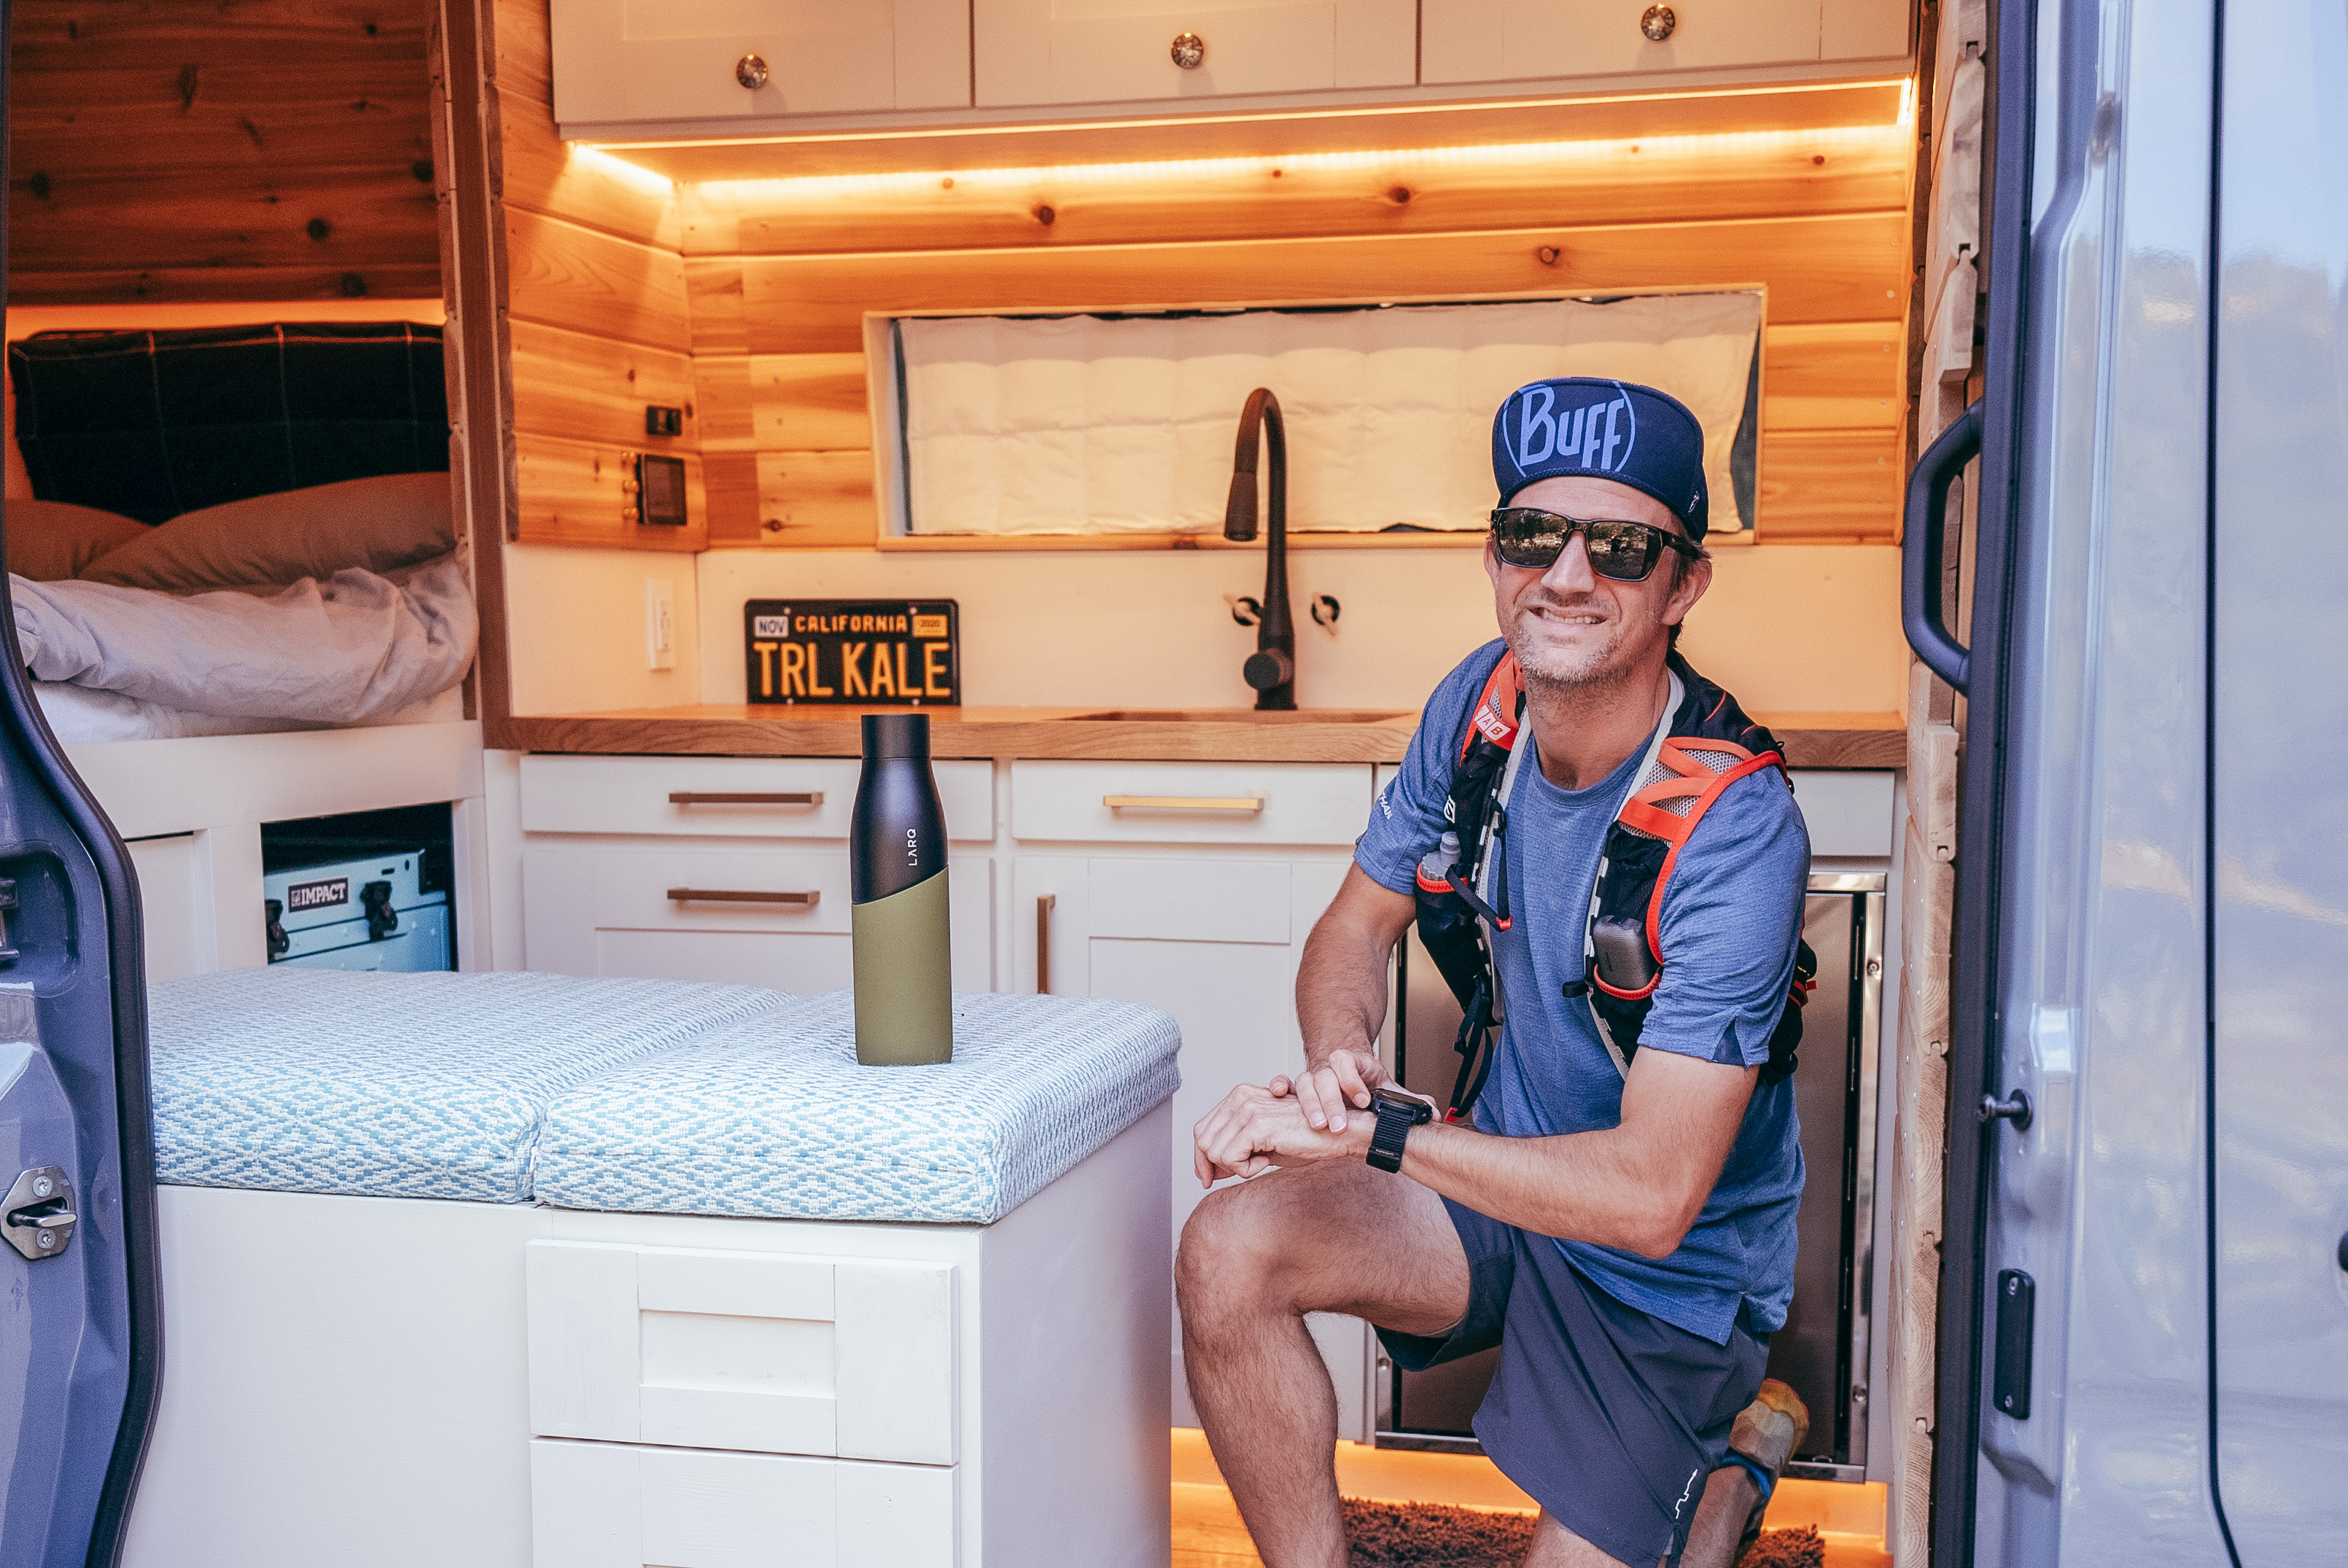 Alastair Dixon of Trail and Kale pictured in his sprinter van with LARQ Bottle Movement in Black/Pine